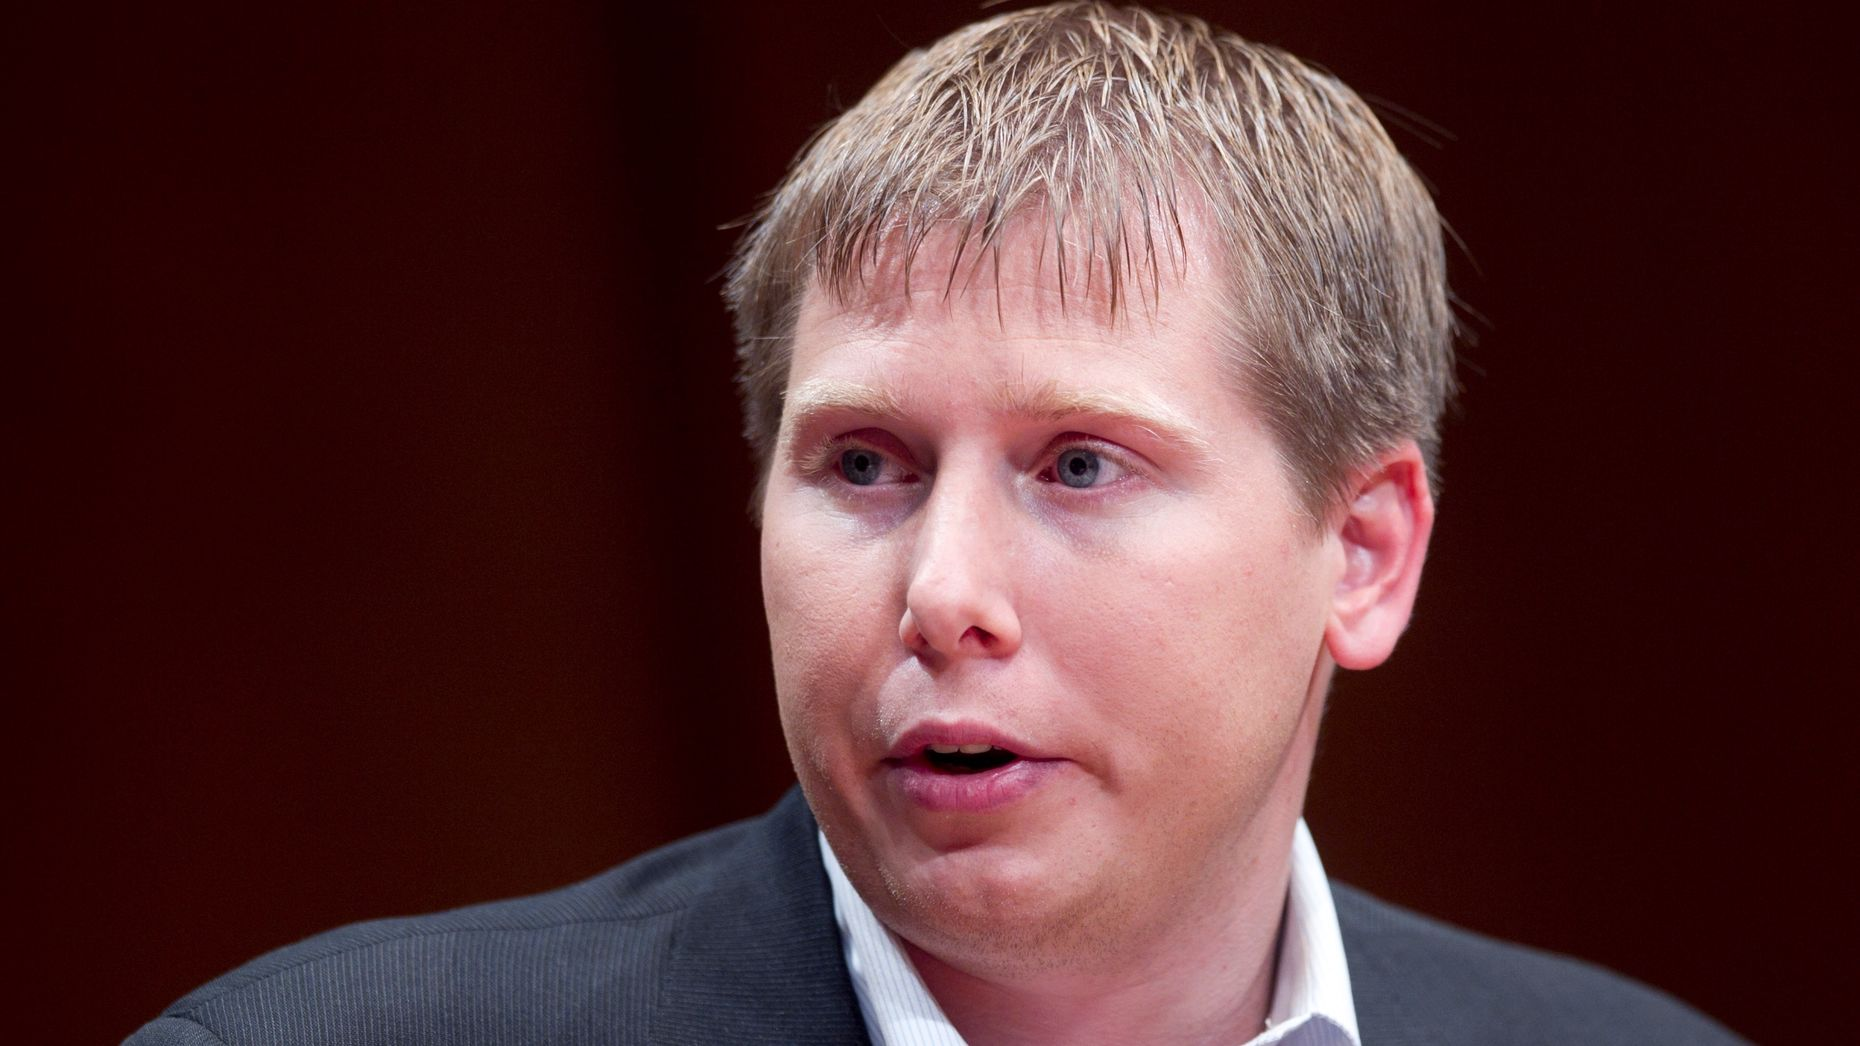 SecondMarket founder Barry Silbert. Photo by Bloomberg.